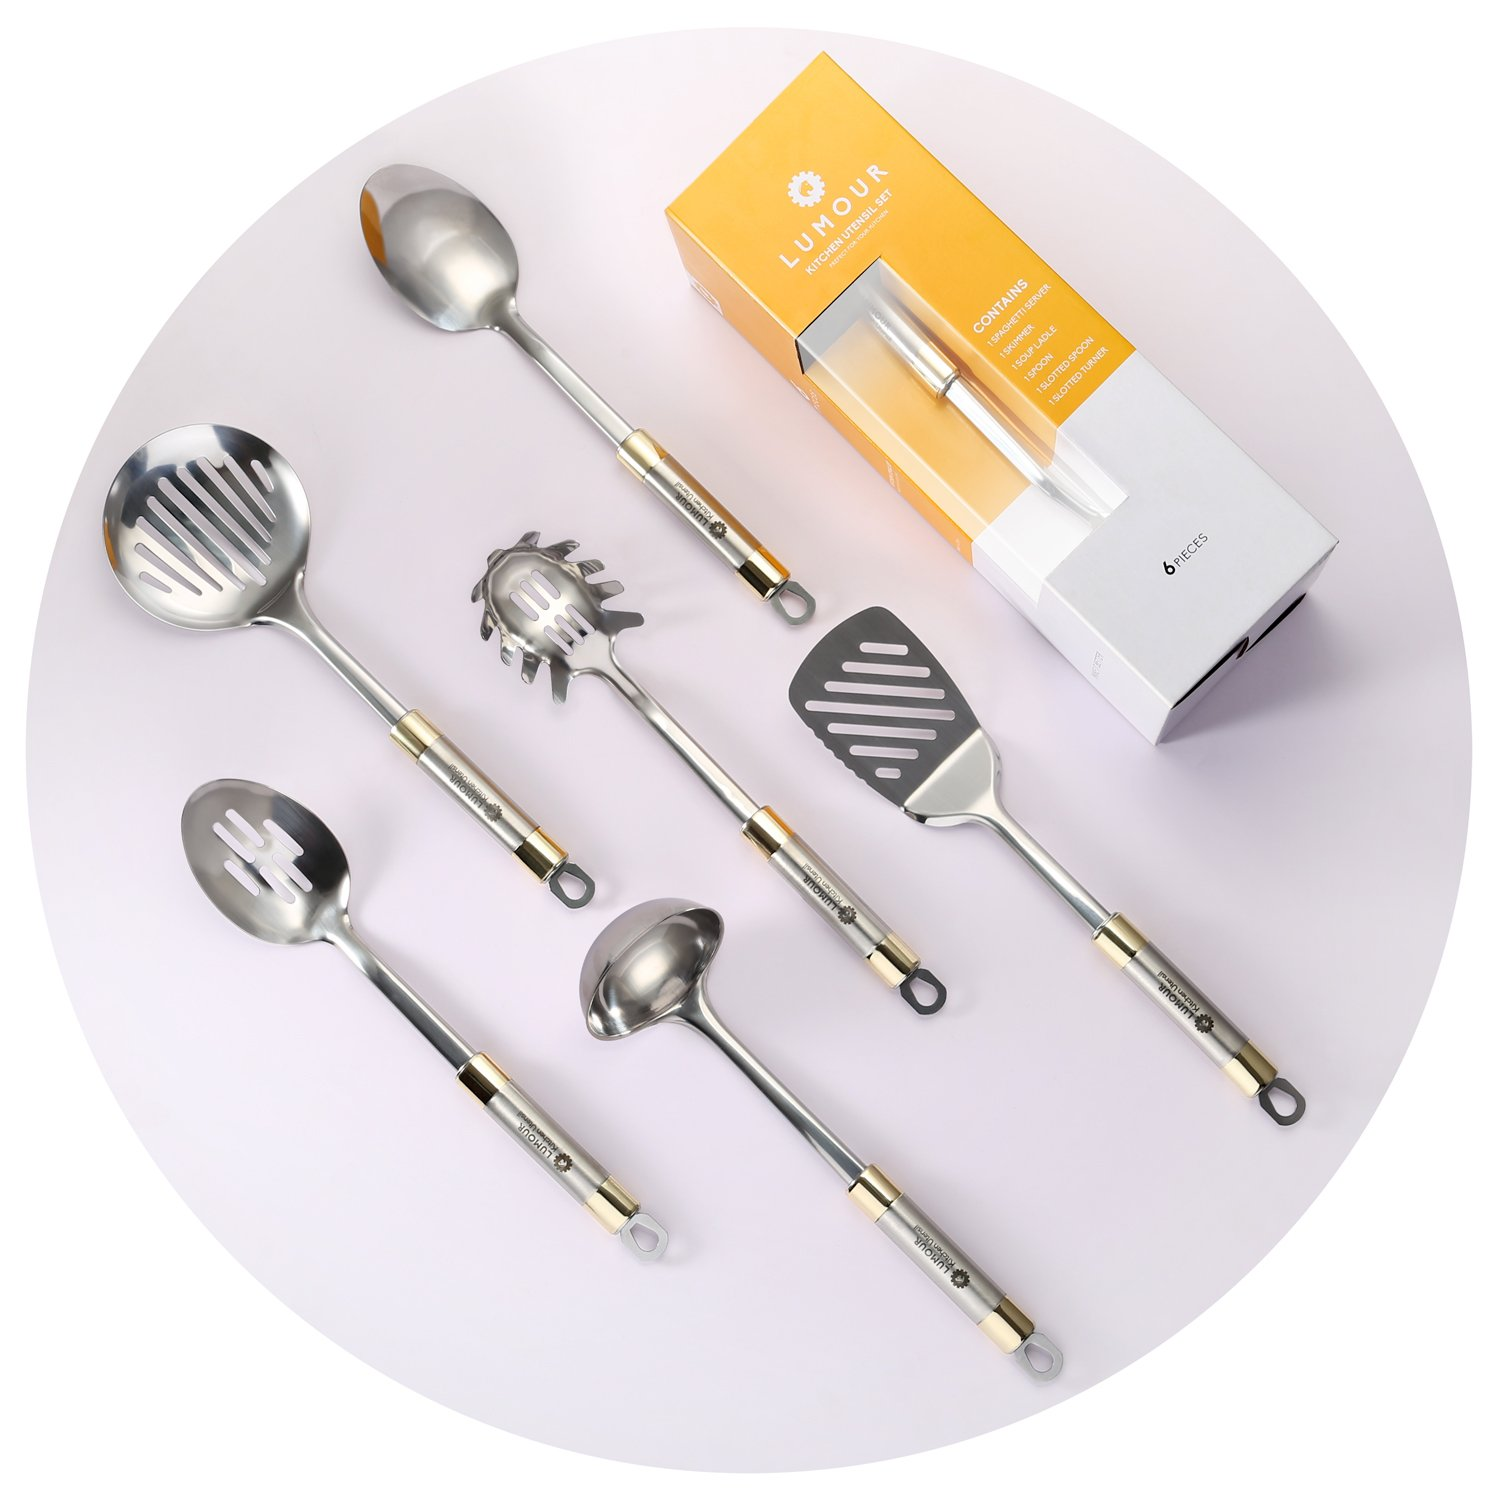 Stainless Steel Gold Kitchen Cooking Utensils Set, dishwasher safe, 6 Pieces Set by Lumour